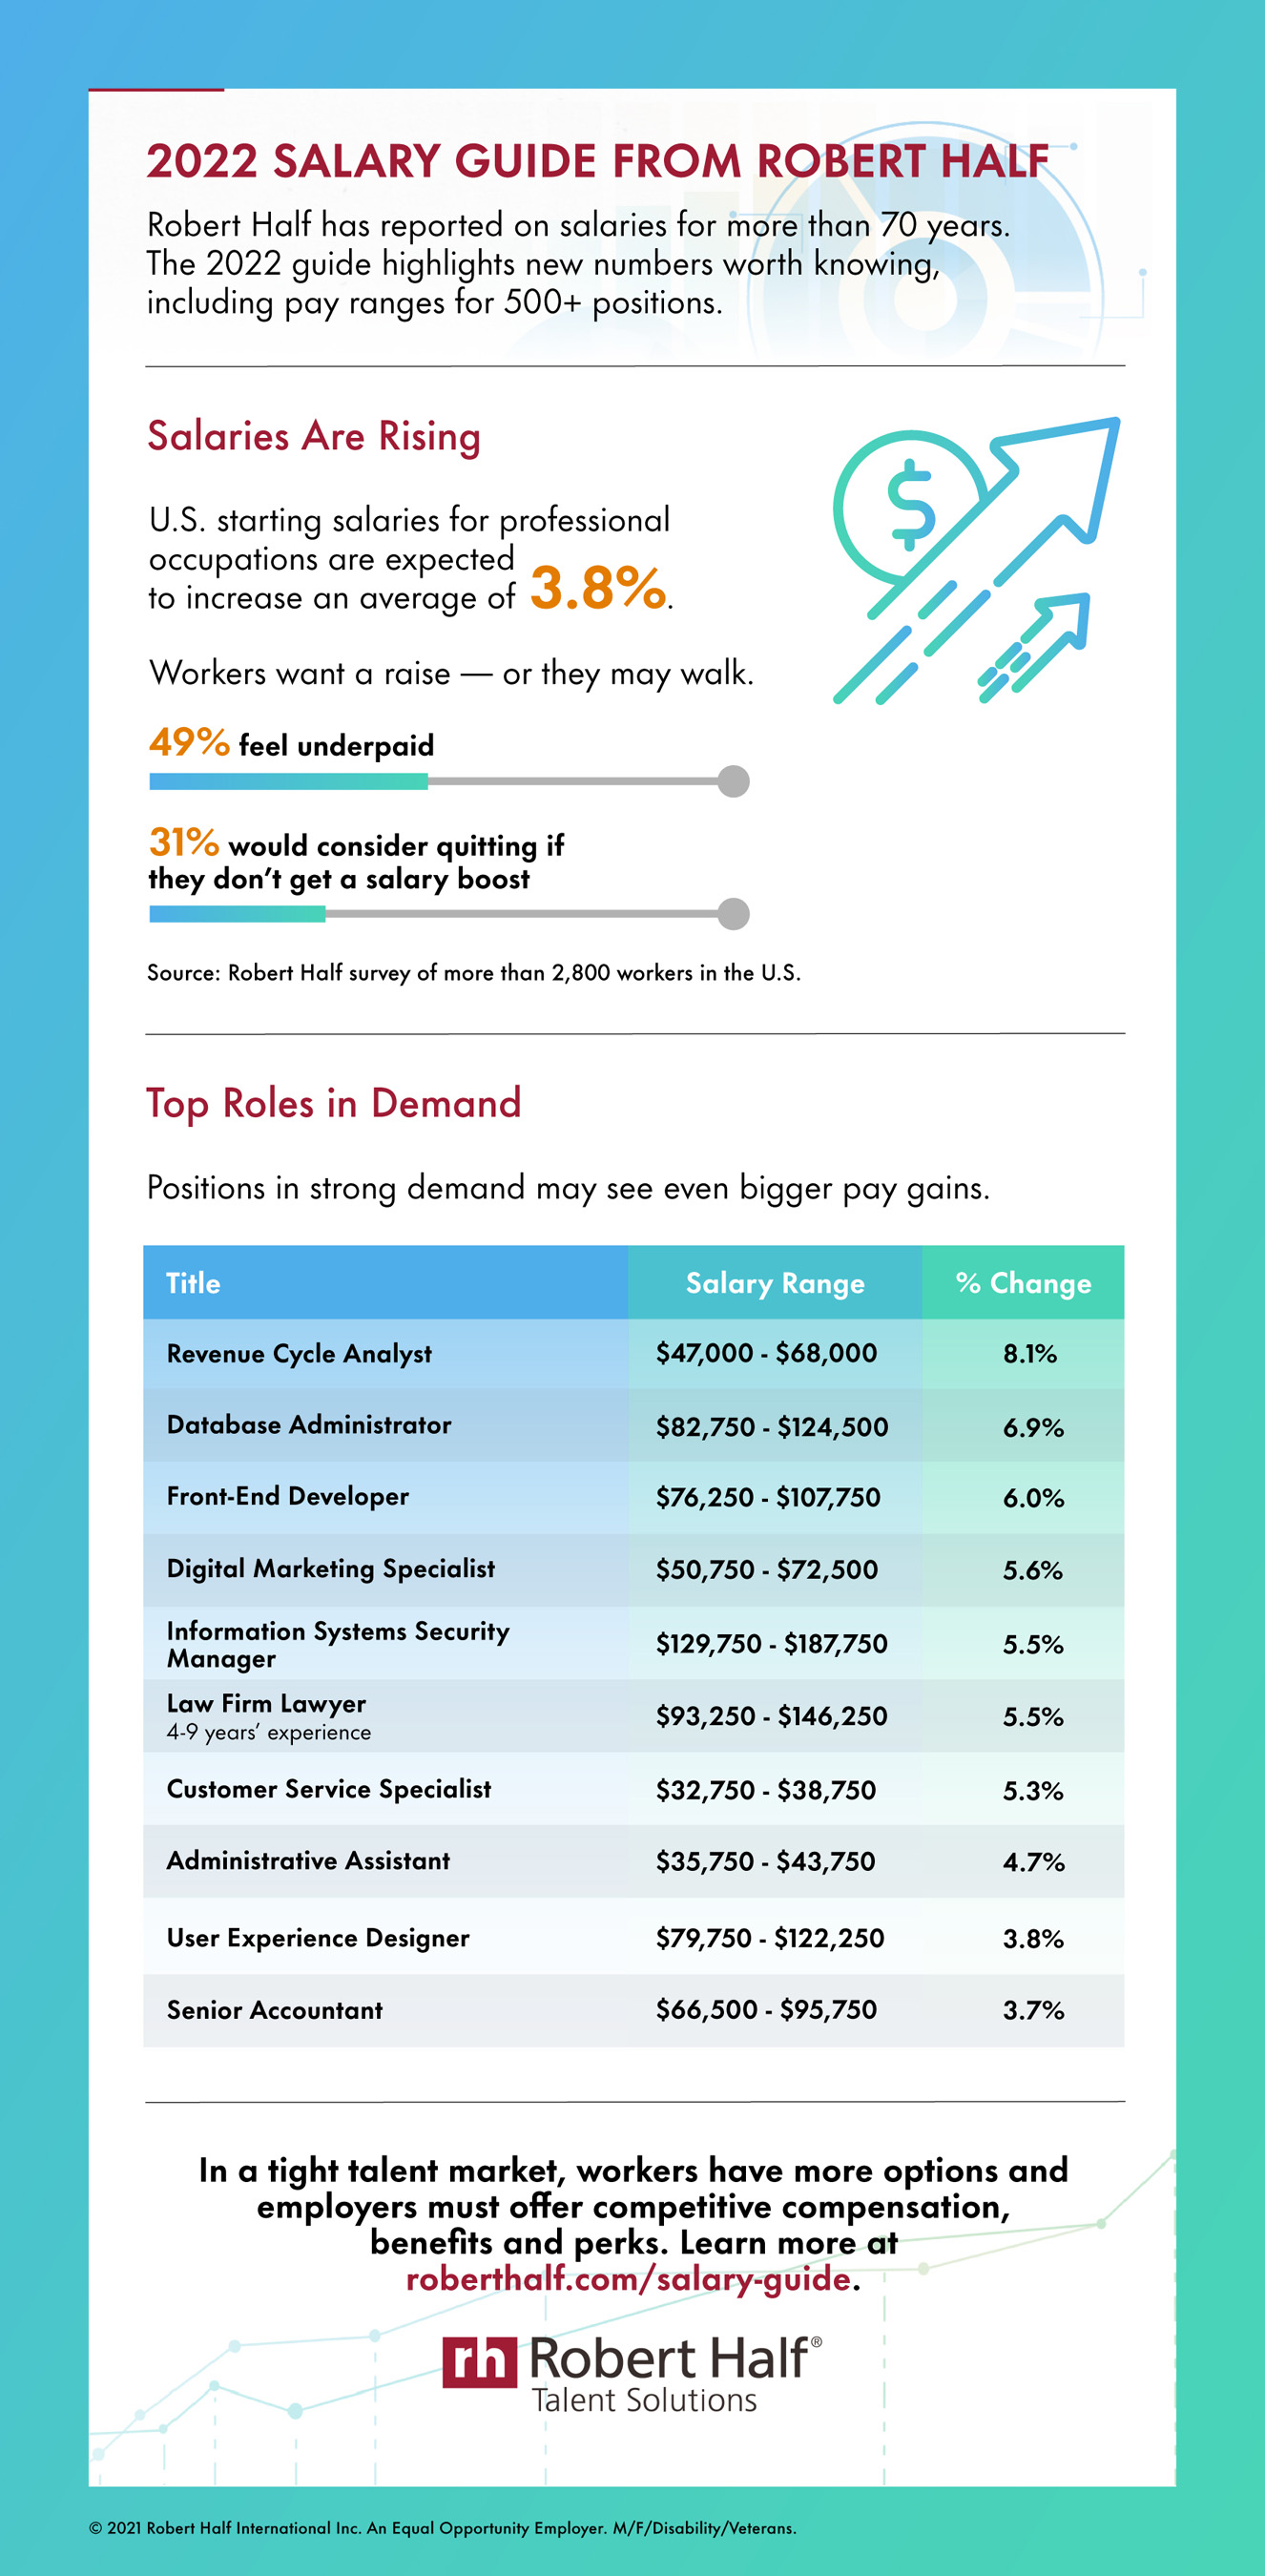 The 2022 Salary Guide from Robert Half reveals in-demand roles expected to see pay gains.